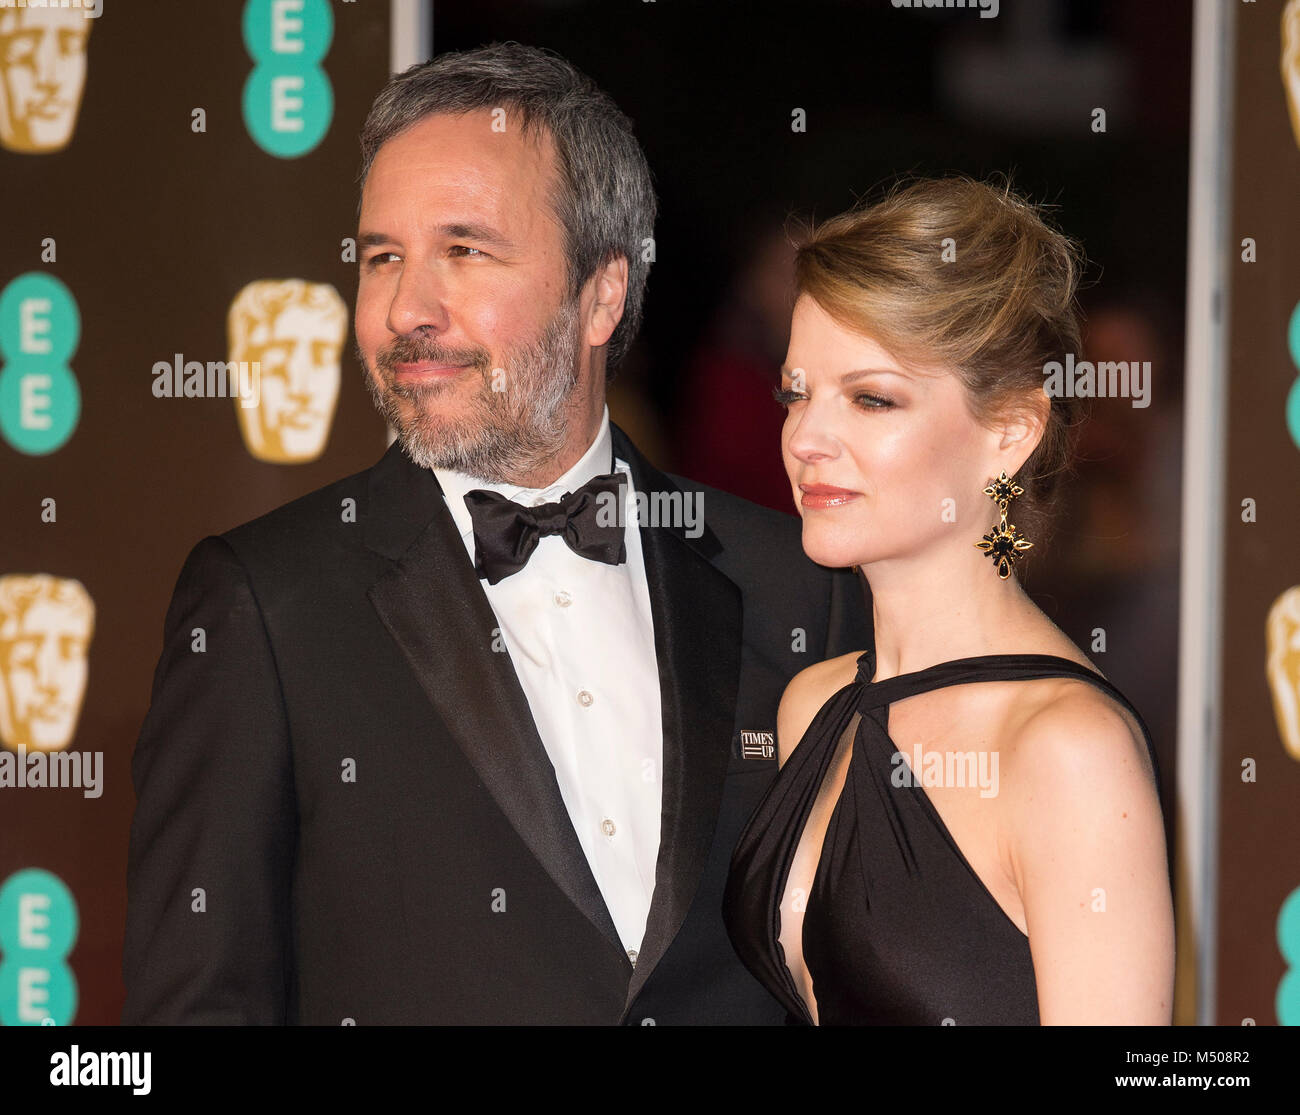 a8e94f9877a4 Denis Villeneuve   Tanya Lapointe attend the EE British Academy Film Awards  (BAFTA) held at Royal Albert Hall on February 18